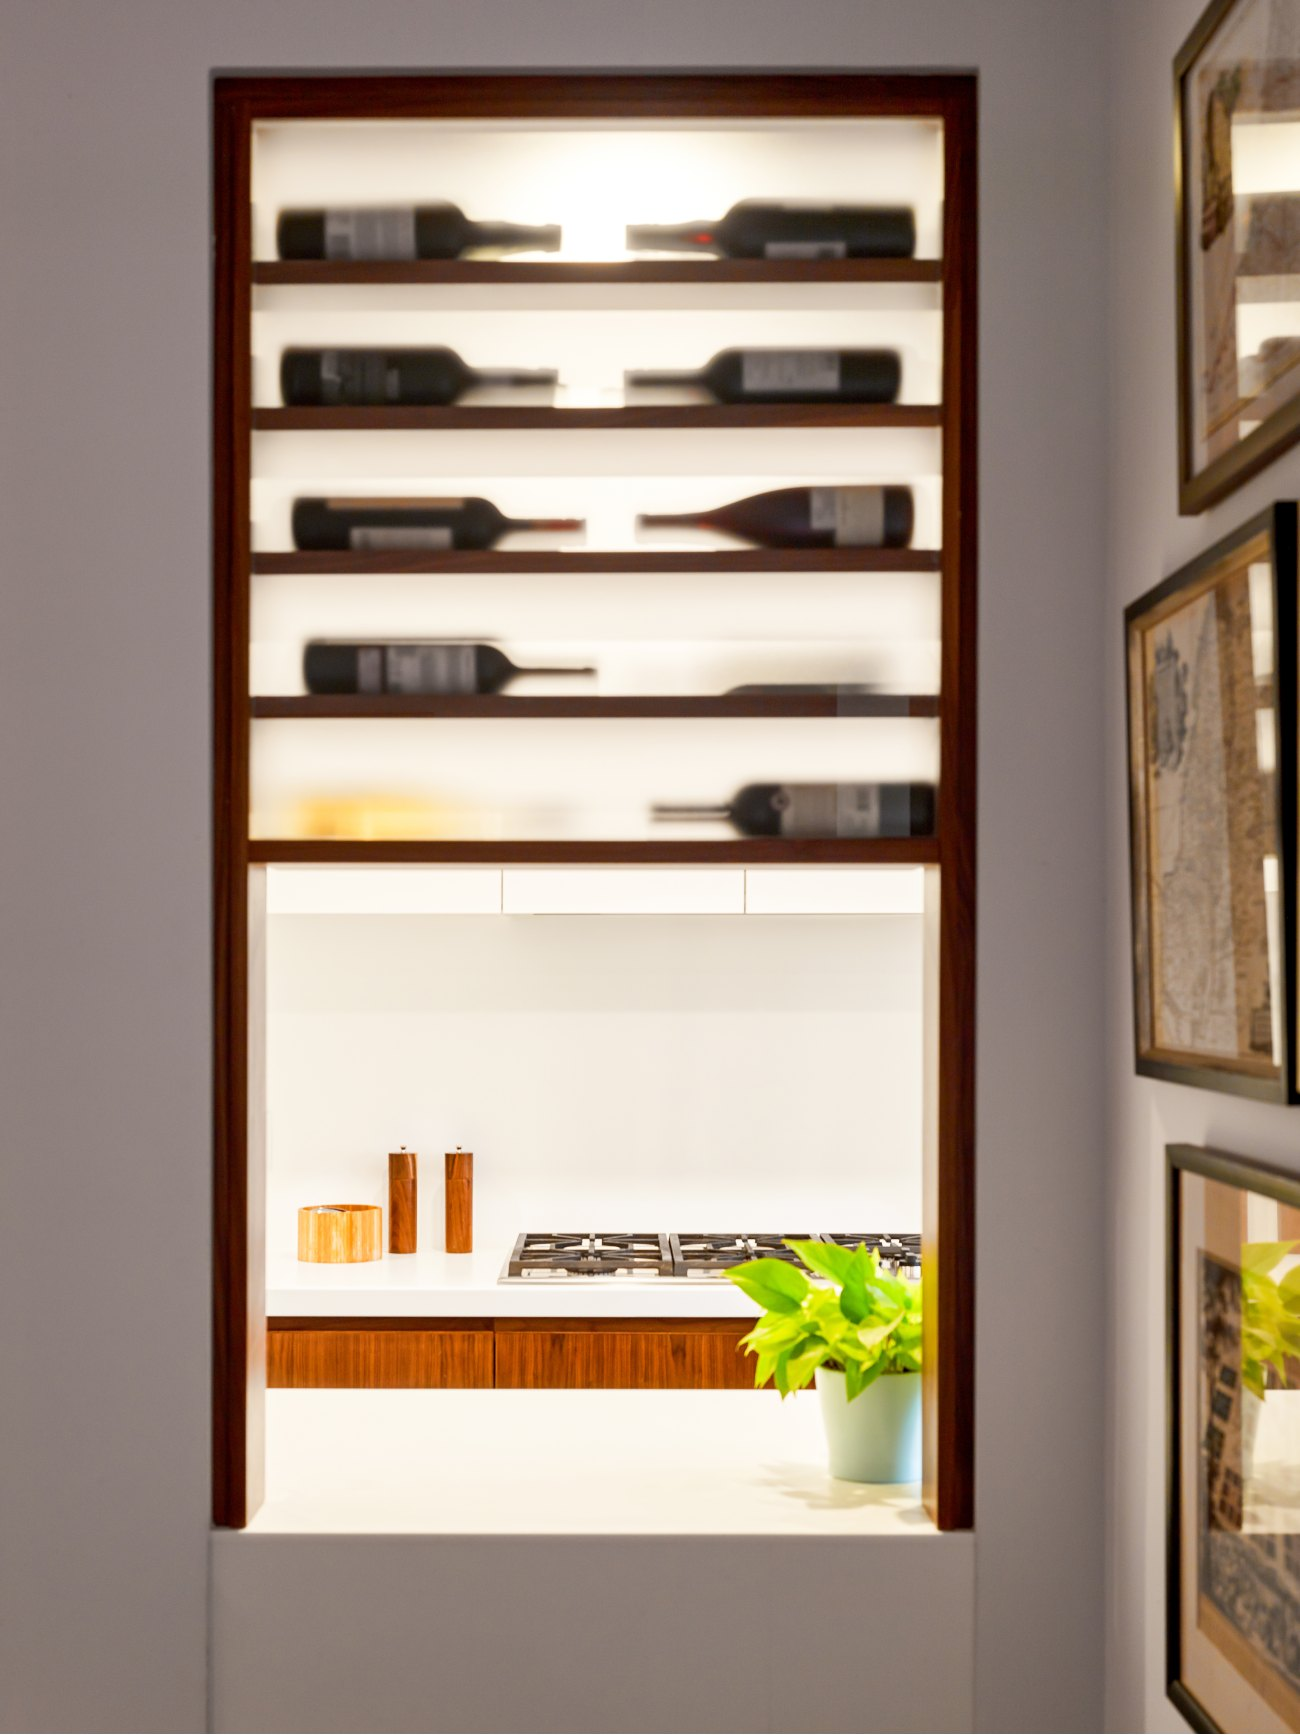 Originally a second entry into the dining room, the doorway has now been re-purposed as a wine rack and pass-through into the kitchen.